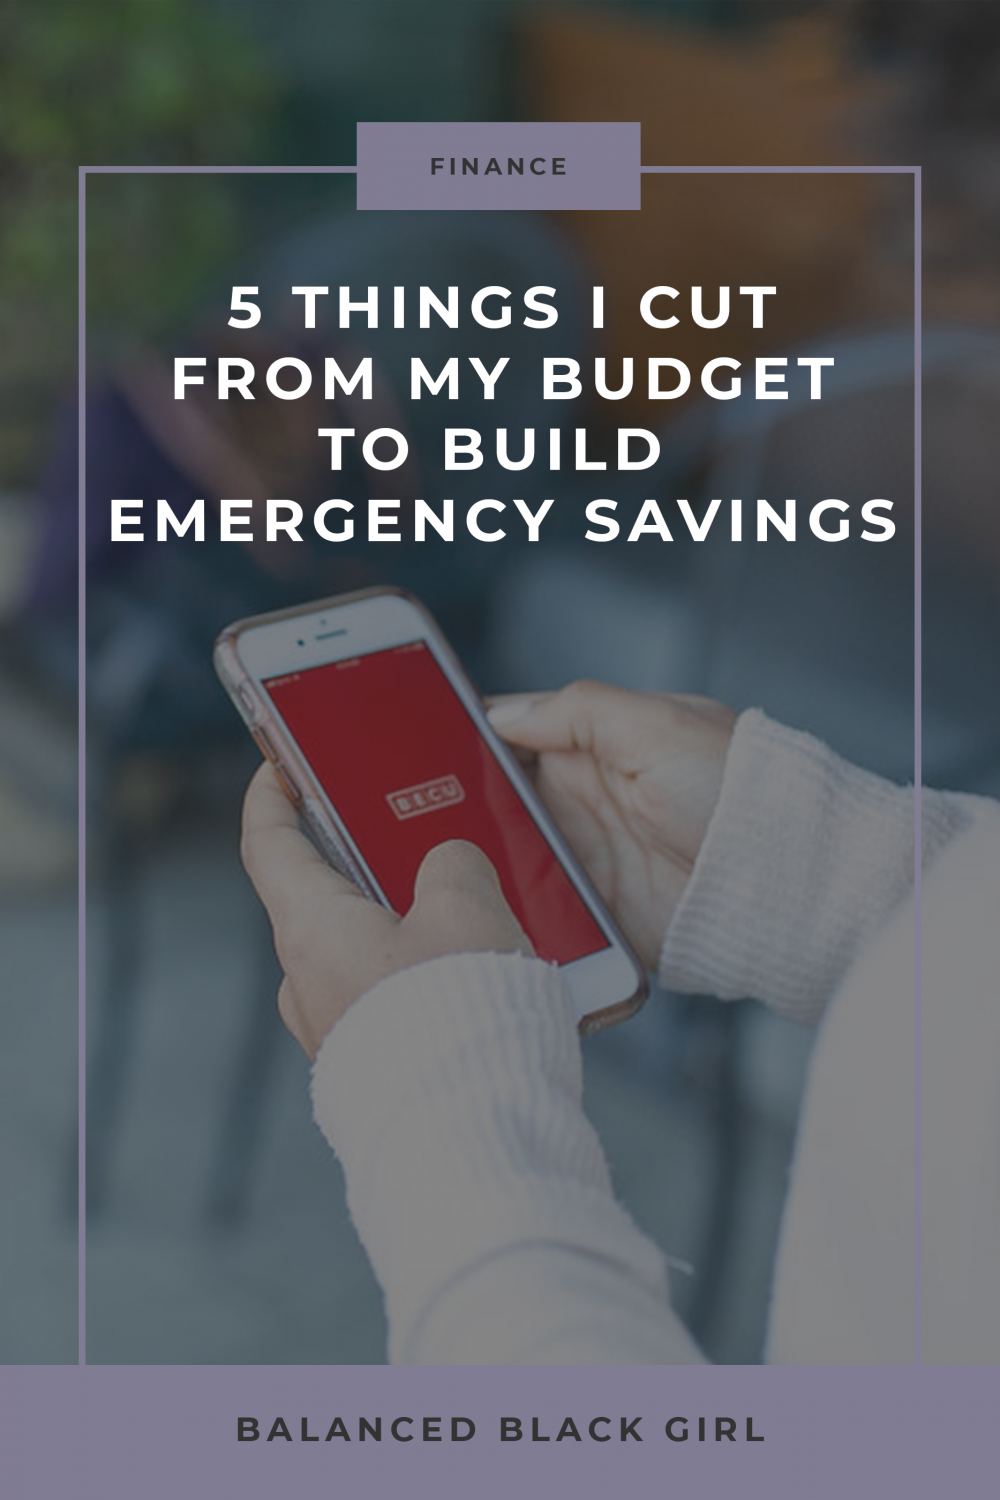 5 Ways I Cut My Budget to Build Emergency Savings